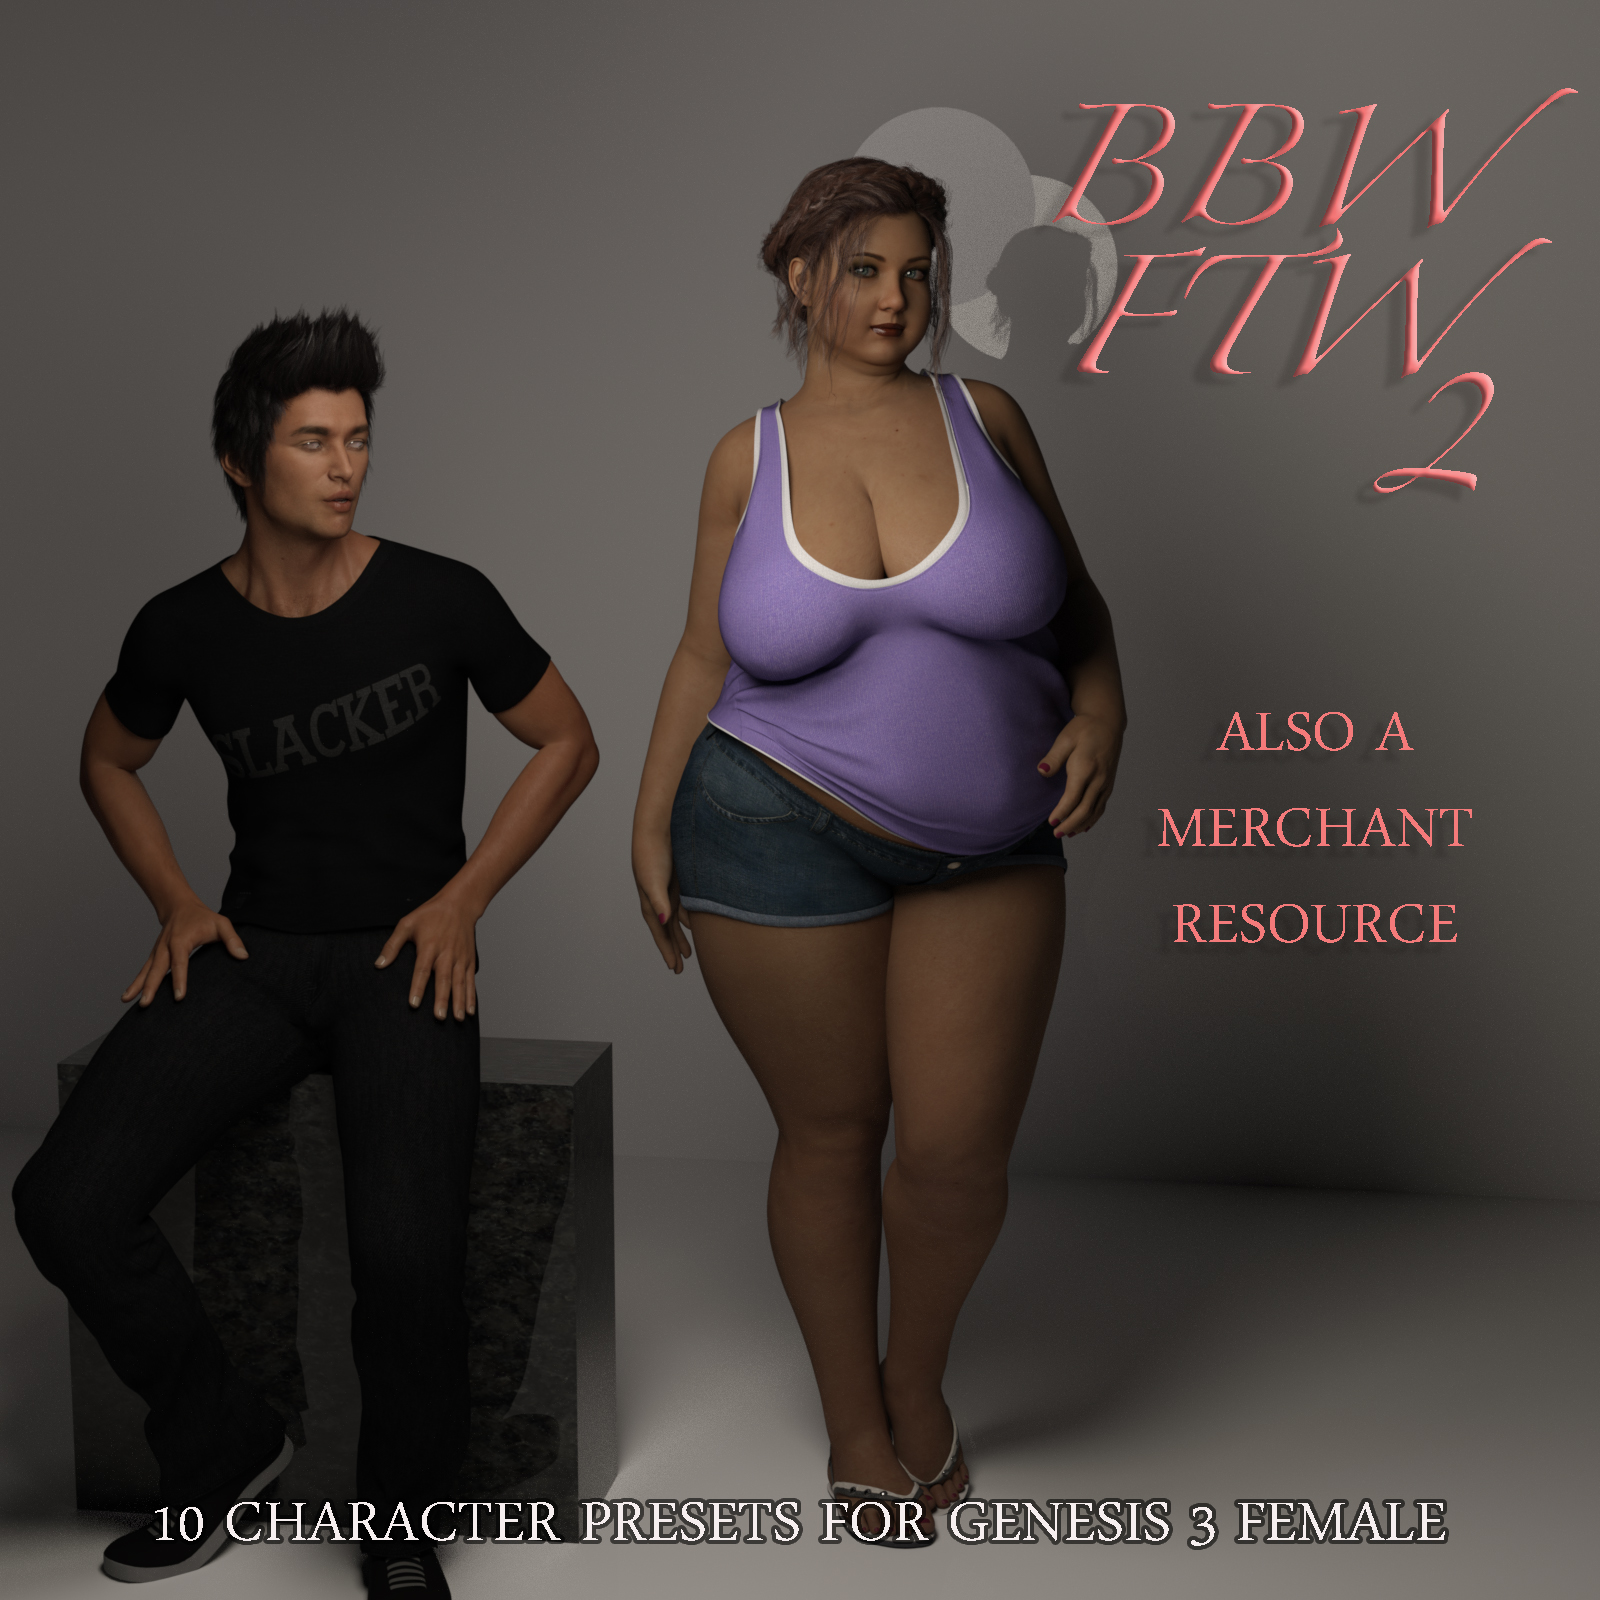 BBW FTW 2  by AliveSheCried